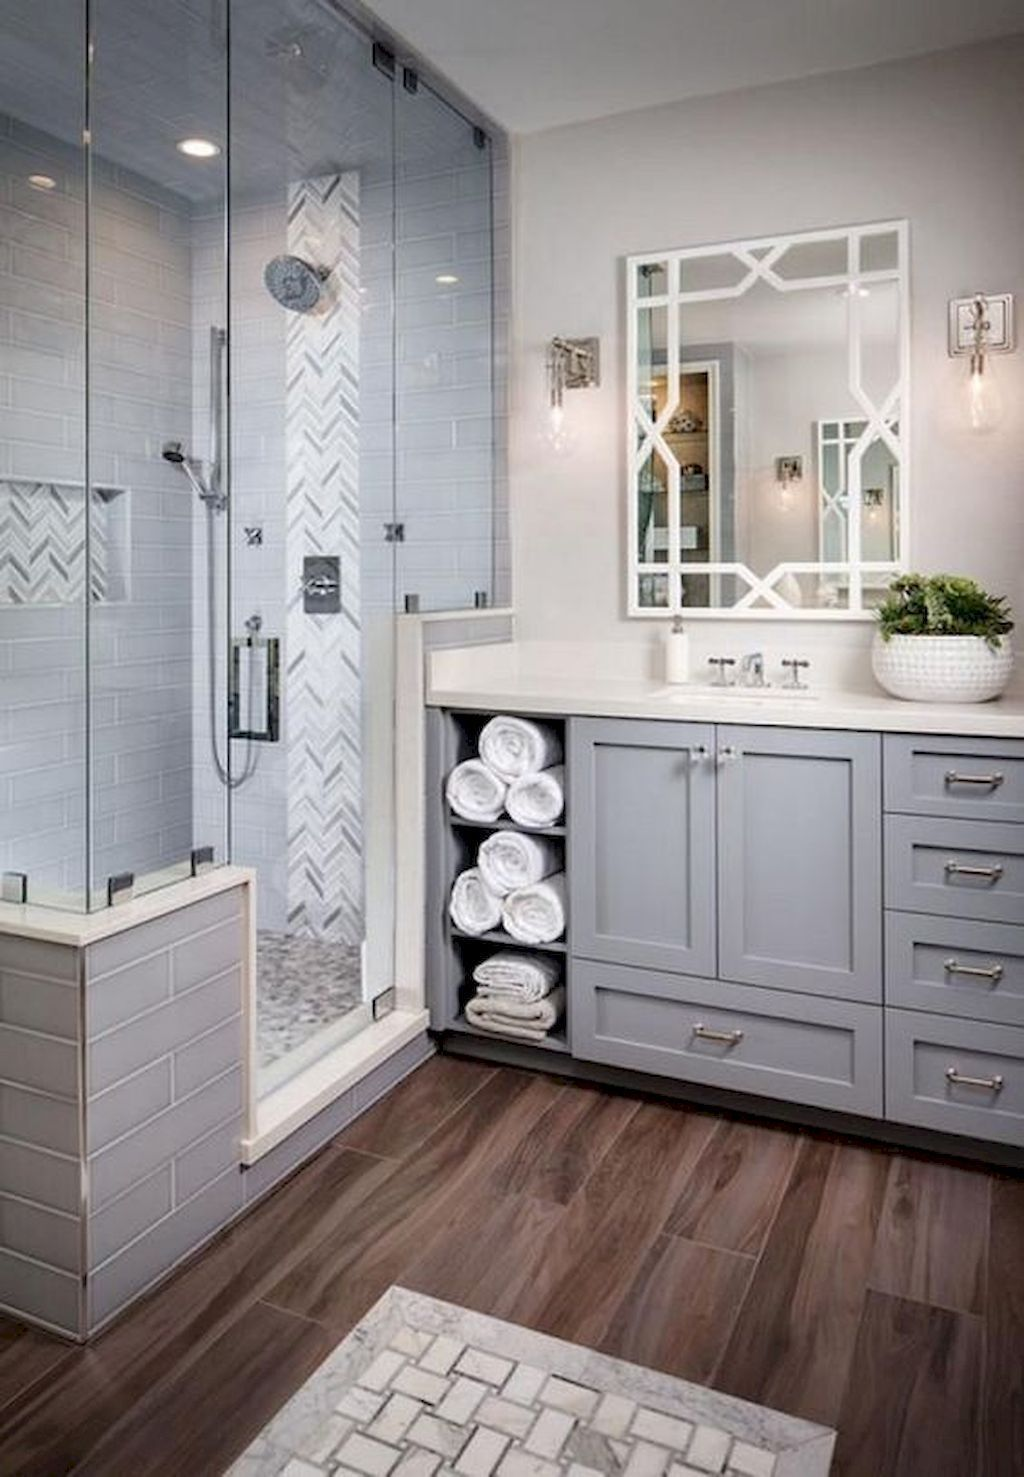 bathroom remodel design is the best option to give your on bathroom renovation ideas modern id=34591